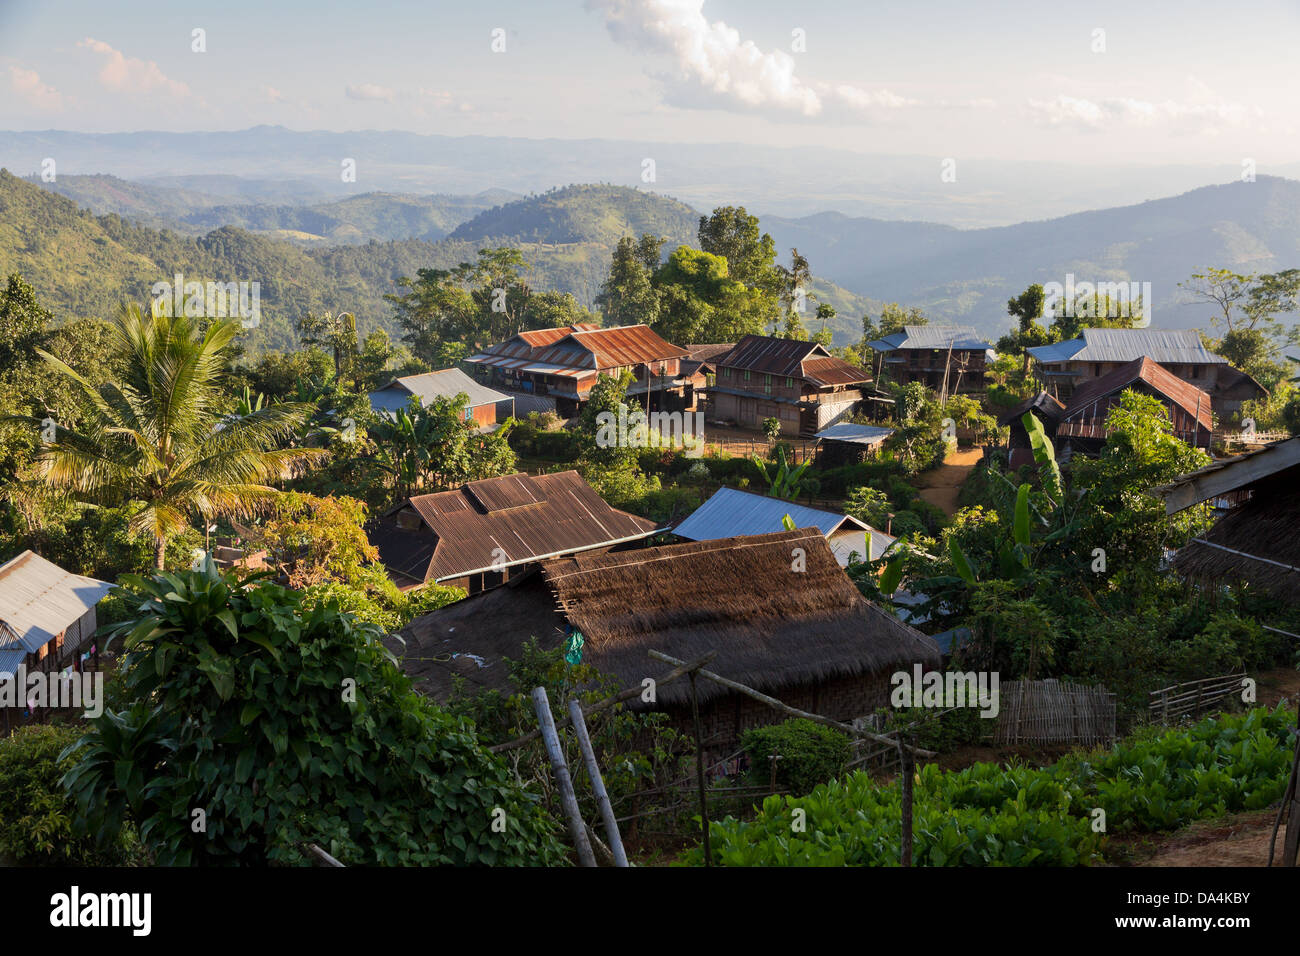 village with wooden huts and thatched roofs on a mountain slope in green jungle near Hpa An, Burma Stock Photo